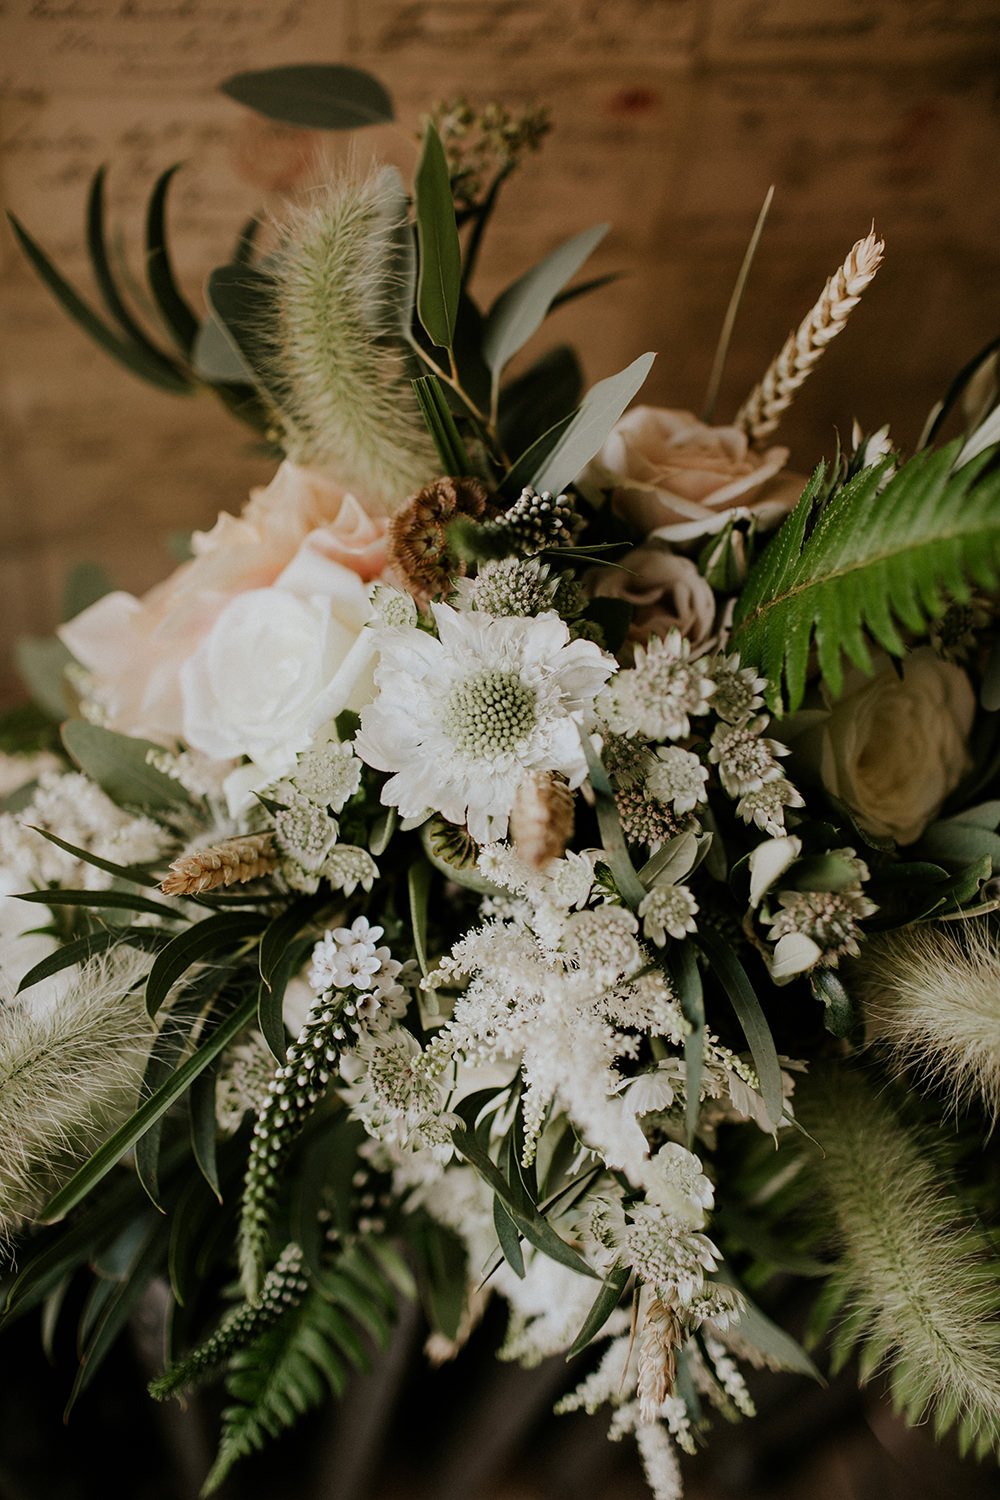 Bride Bridal Bouquet Flowers Greenery Foliage Wheat Fern Rose White Champagne Bell Ticehurst Wedding Irene Yap Photography